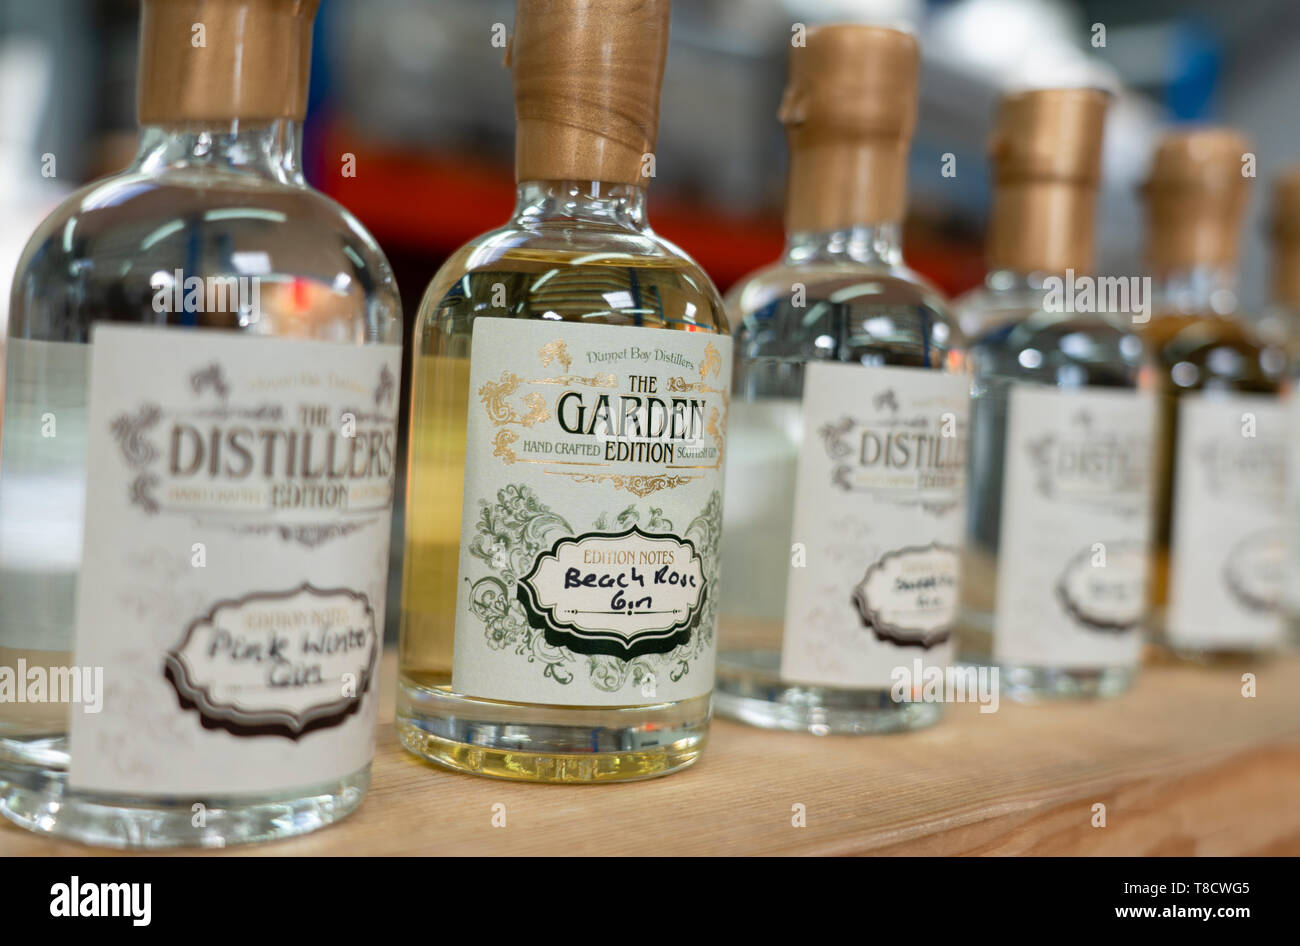 Samples of Gin at Dunnet Bay Distillery in Caithness on  the North Coast 500 scenic driving route in northern Scotland, UK - Stock Image